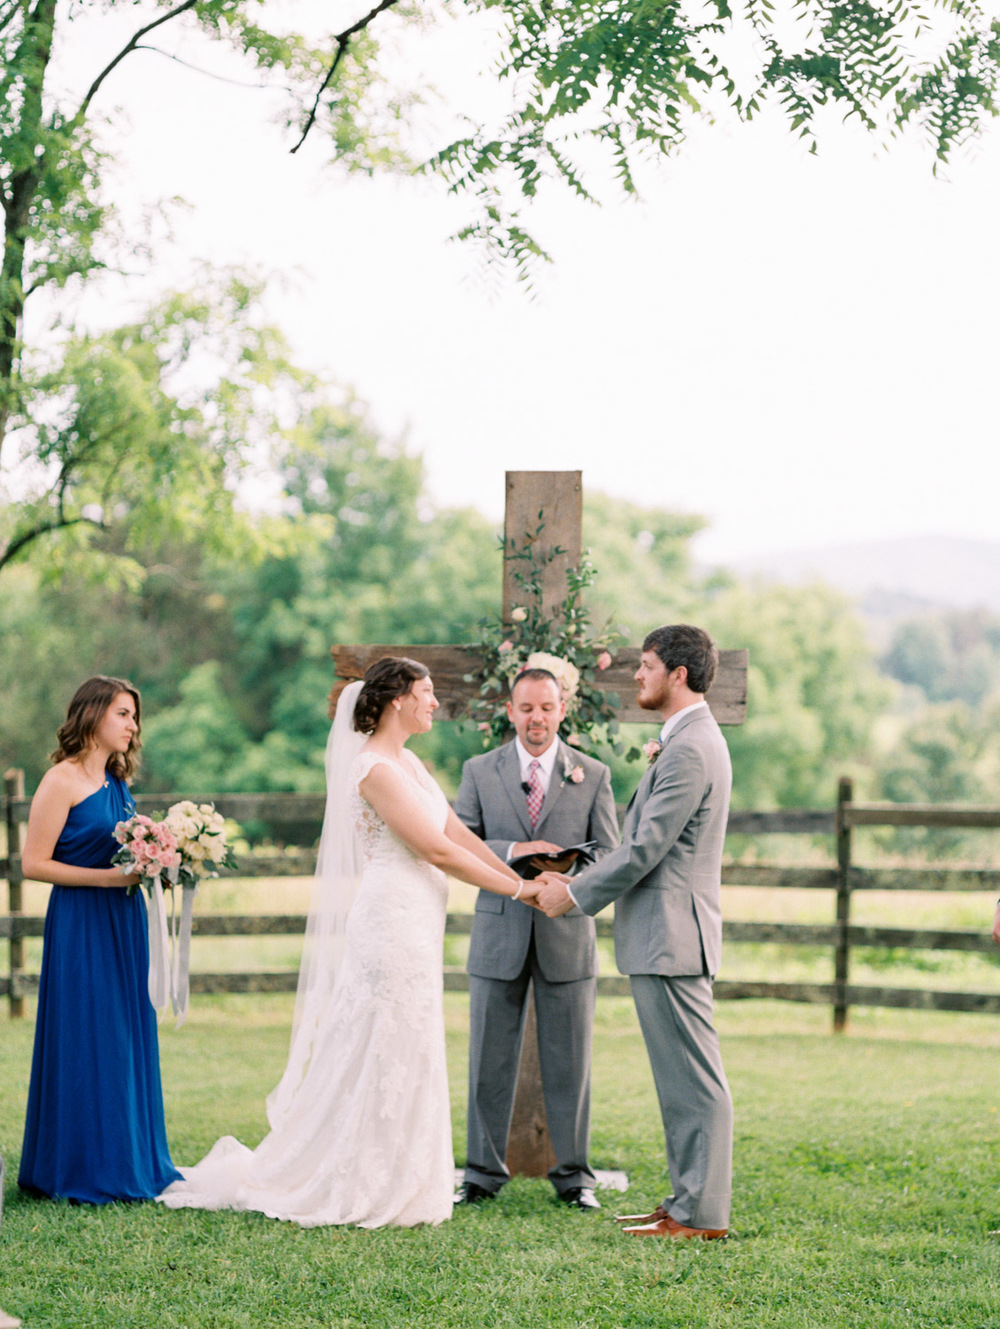 Lynchburg Virginia | Sorella Farms | Charlottesville Virginia | Wedding Photographer | Kelsey & Nate | kelseyandnate.com | Scottish Wedding